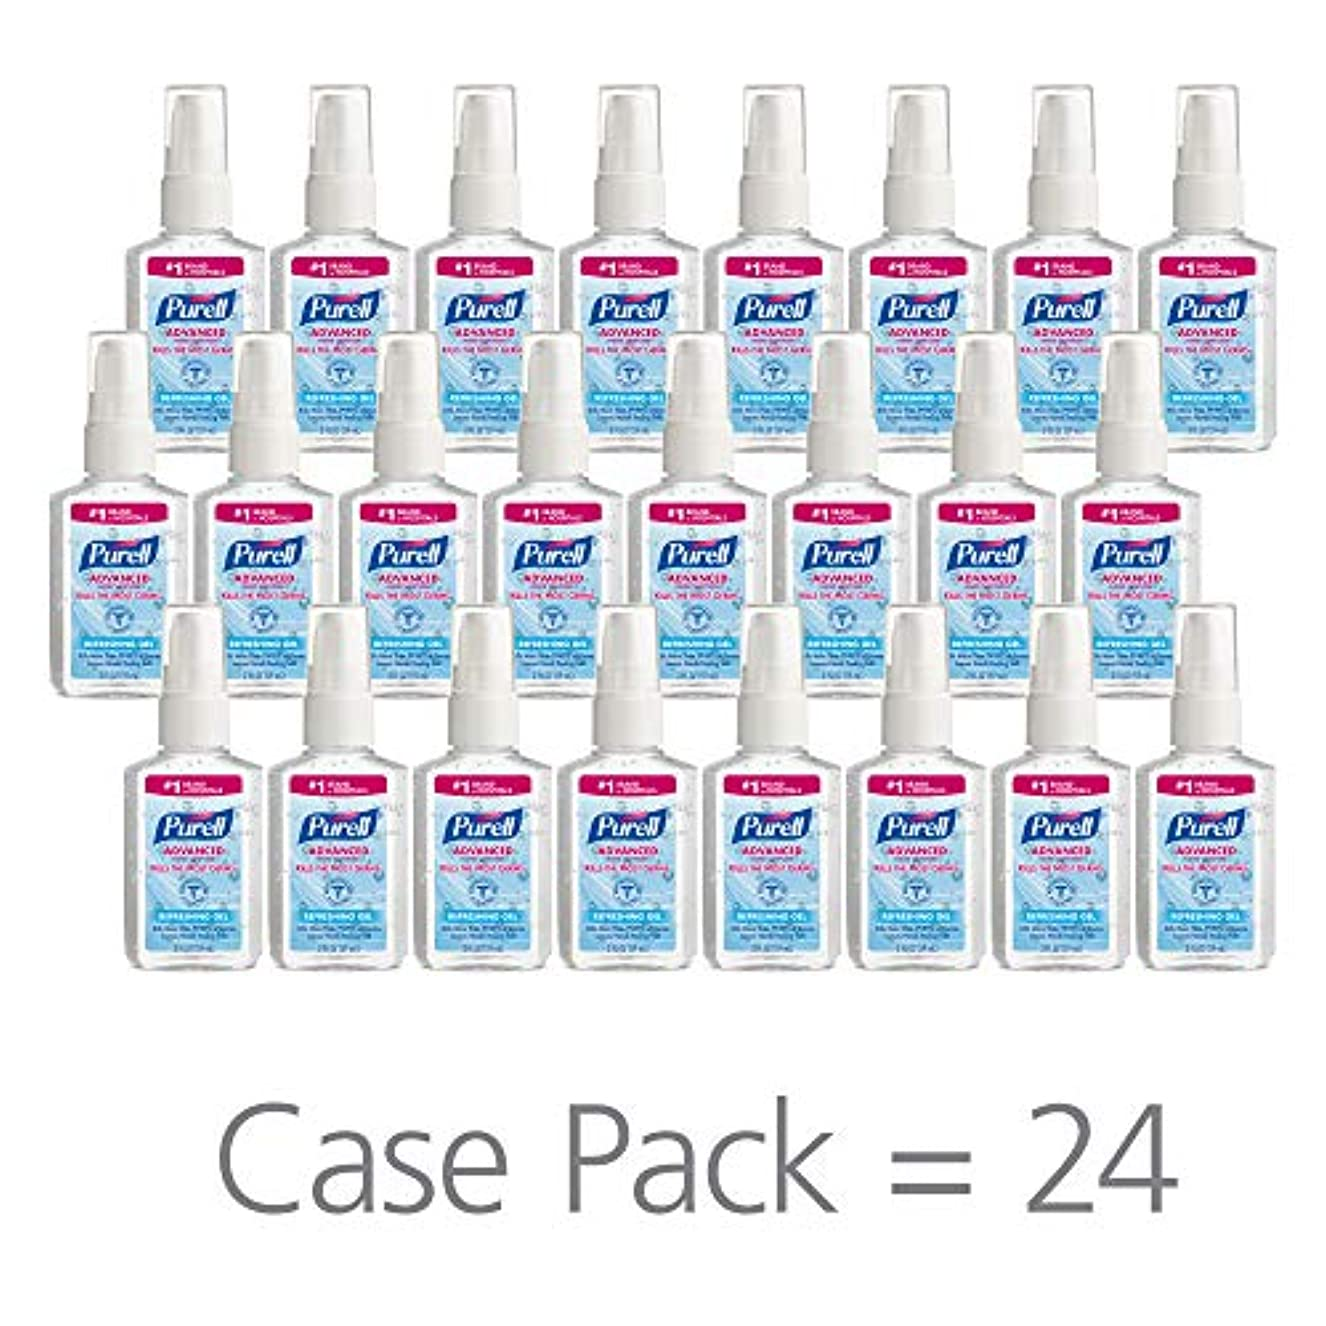 冷淡な迫害するメロディーPURELL 9606-24 Advanced Instant Hand Sanitizer, 2 fl. oz. Pump Bottle (Case of 24),2 fl. Oz by Purell